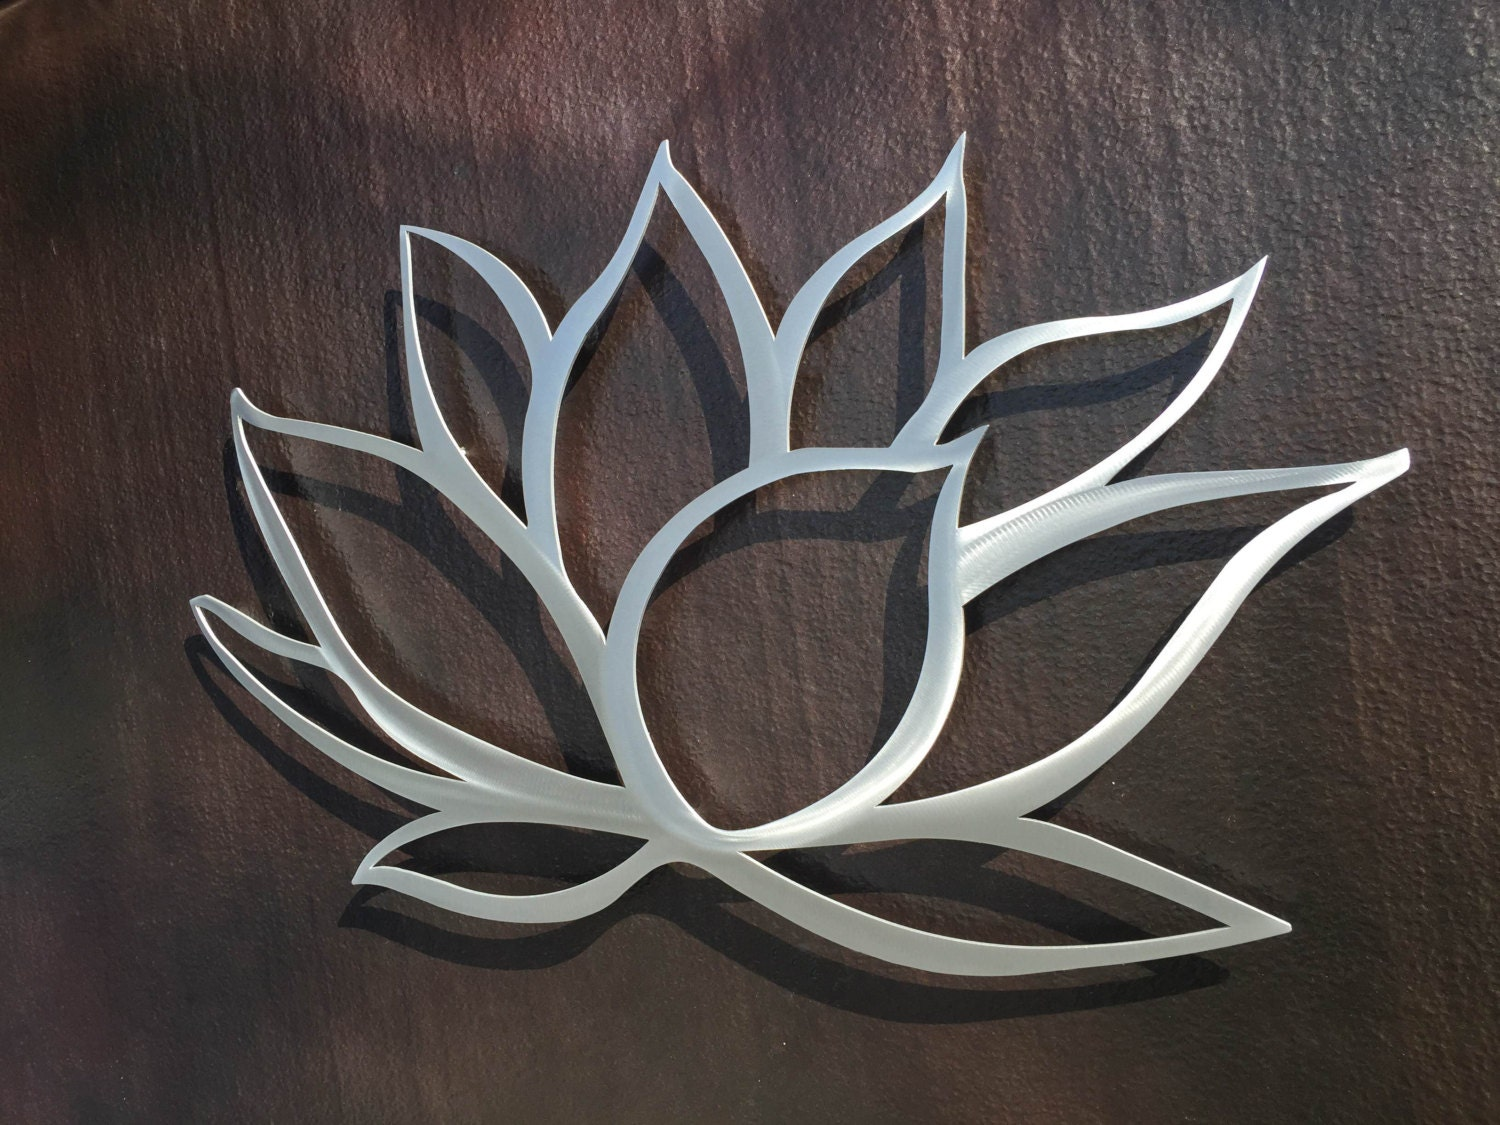 Wall Decor Metal lotus flower metal wall art lotus metal art home decor